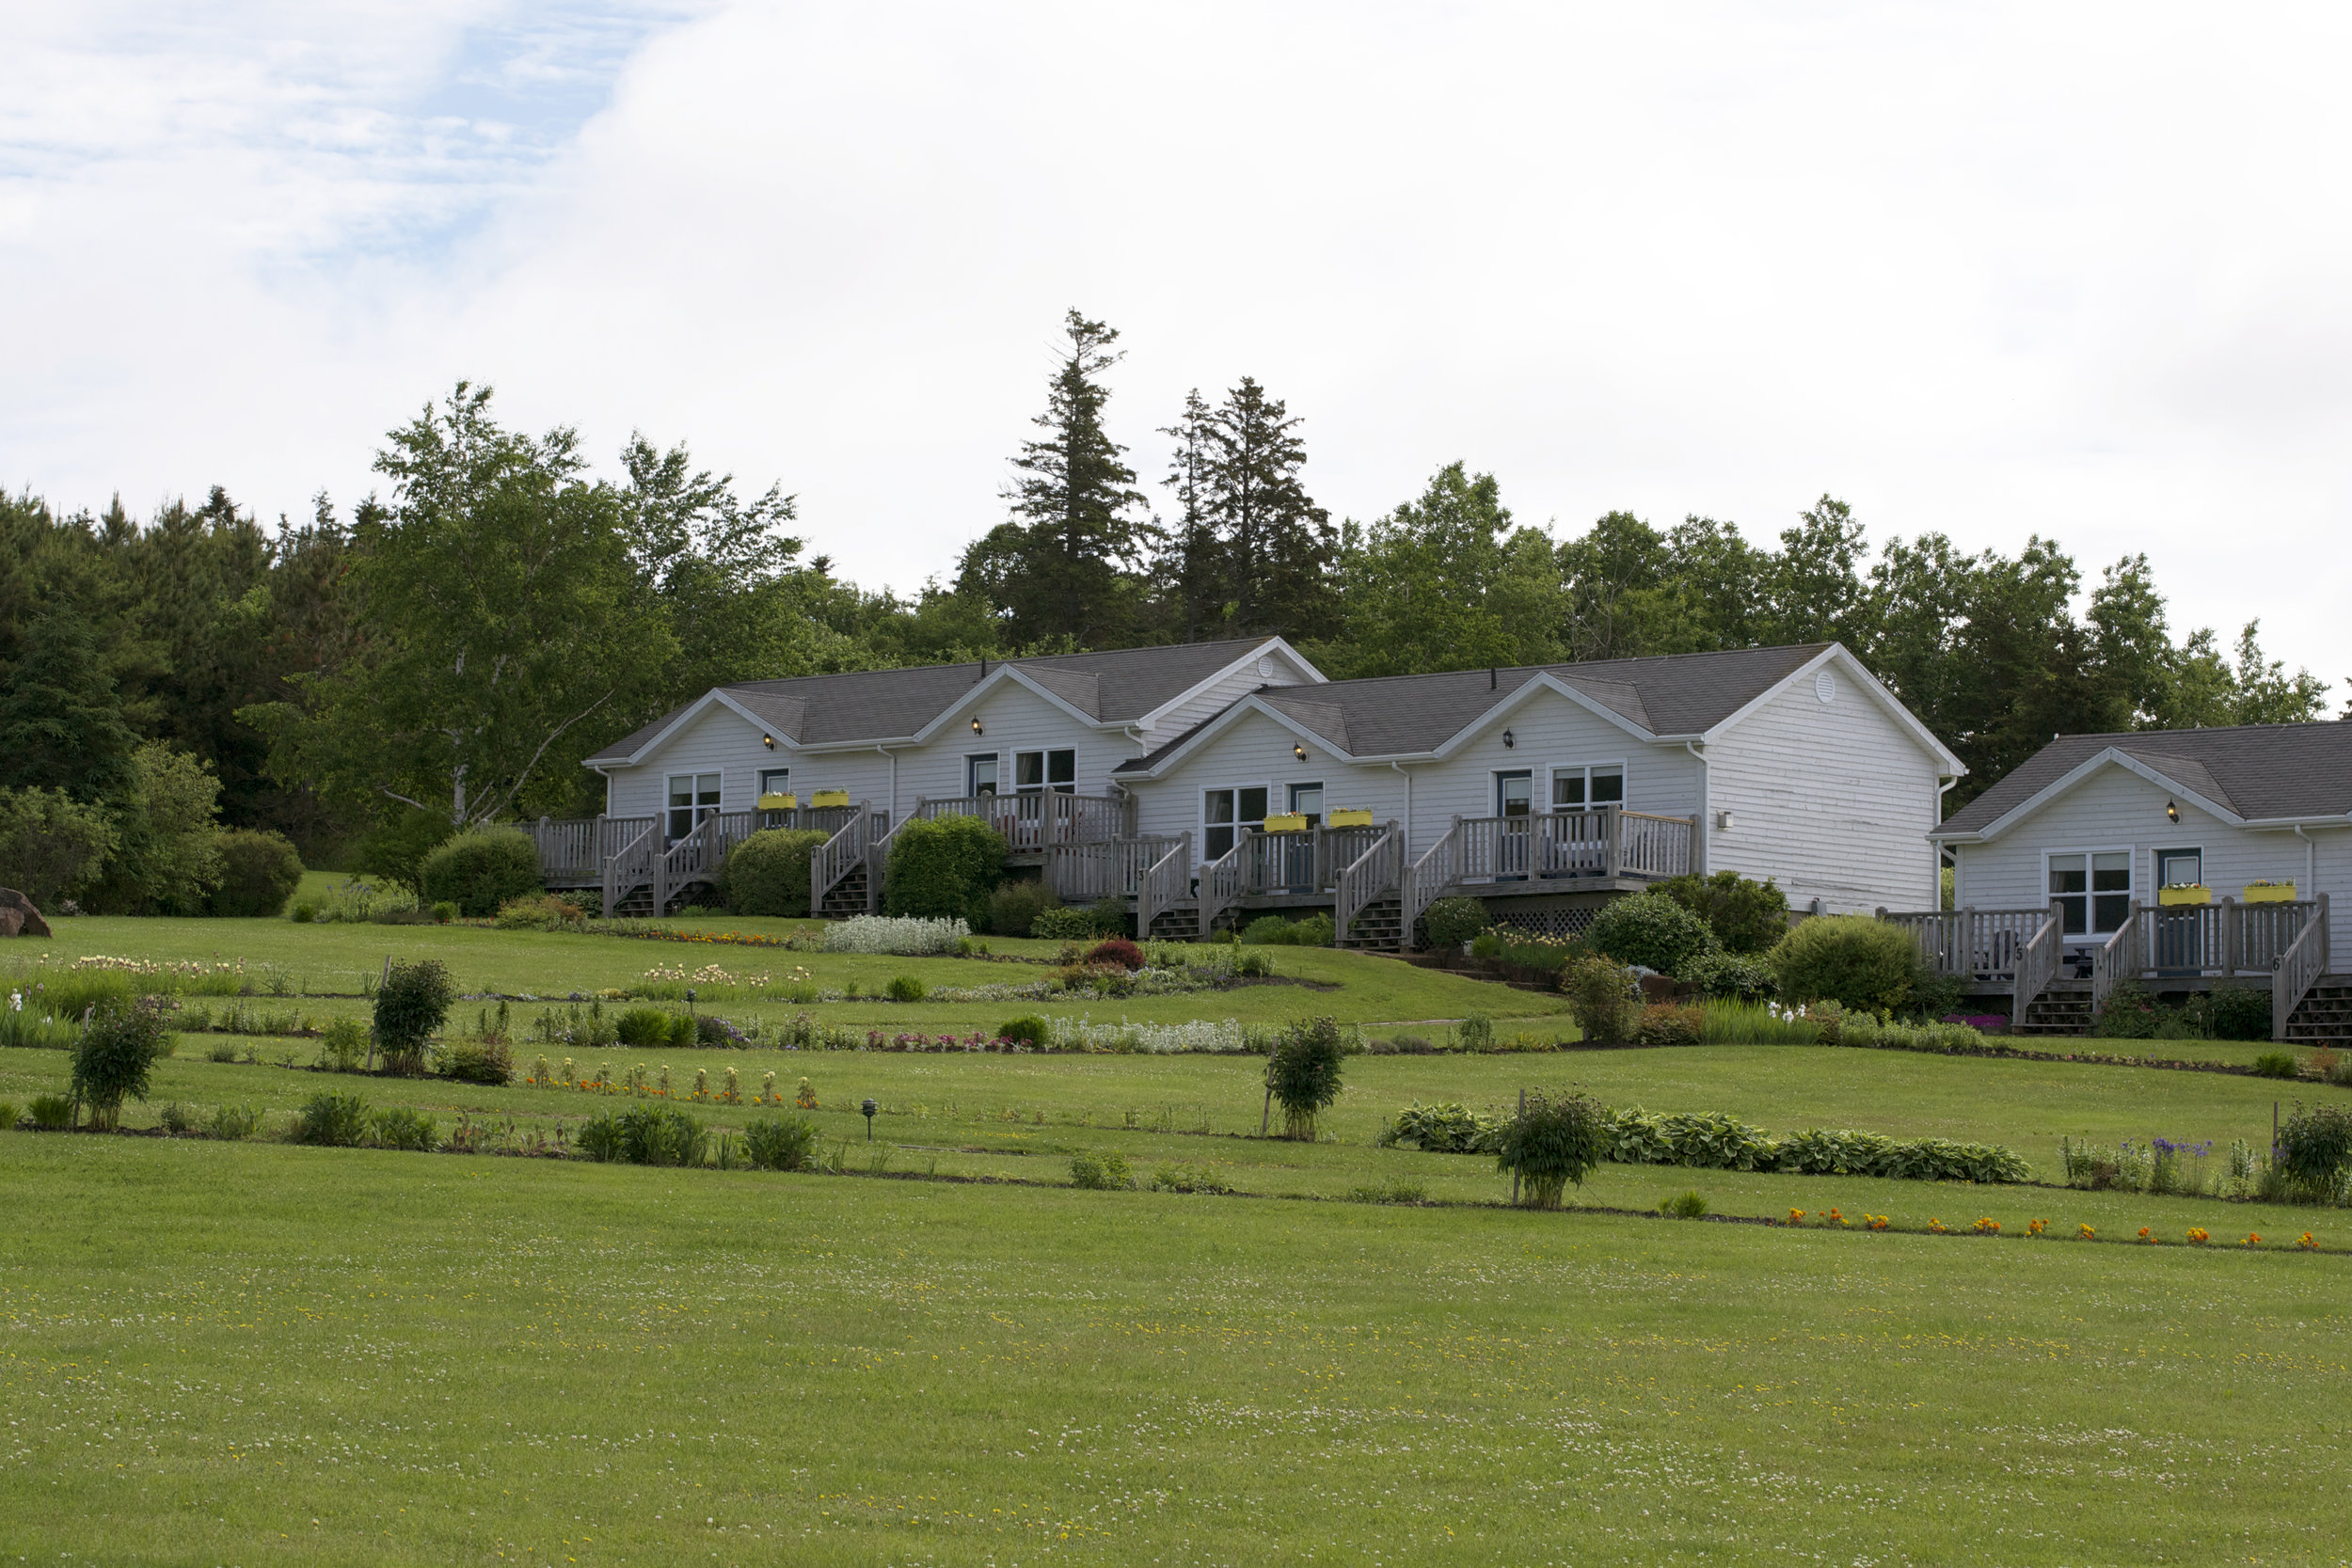 cottages-grouping-near-top-of property.jpg